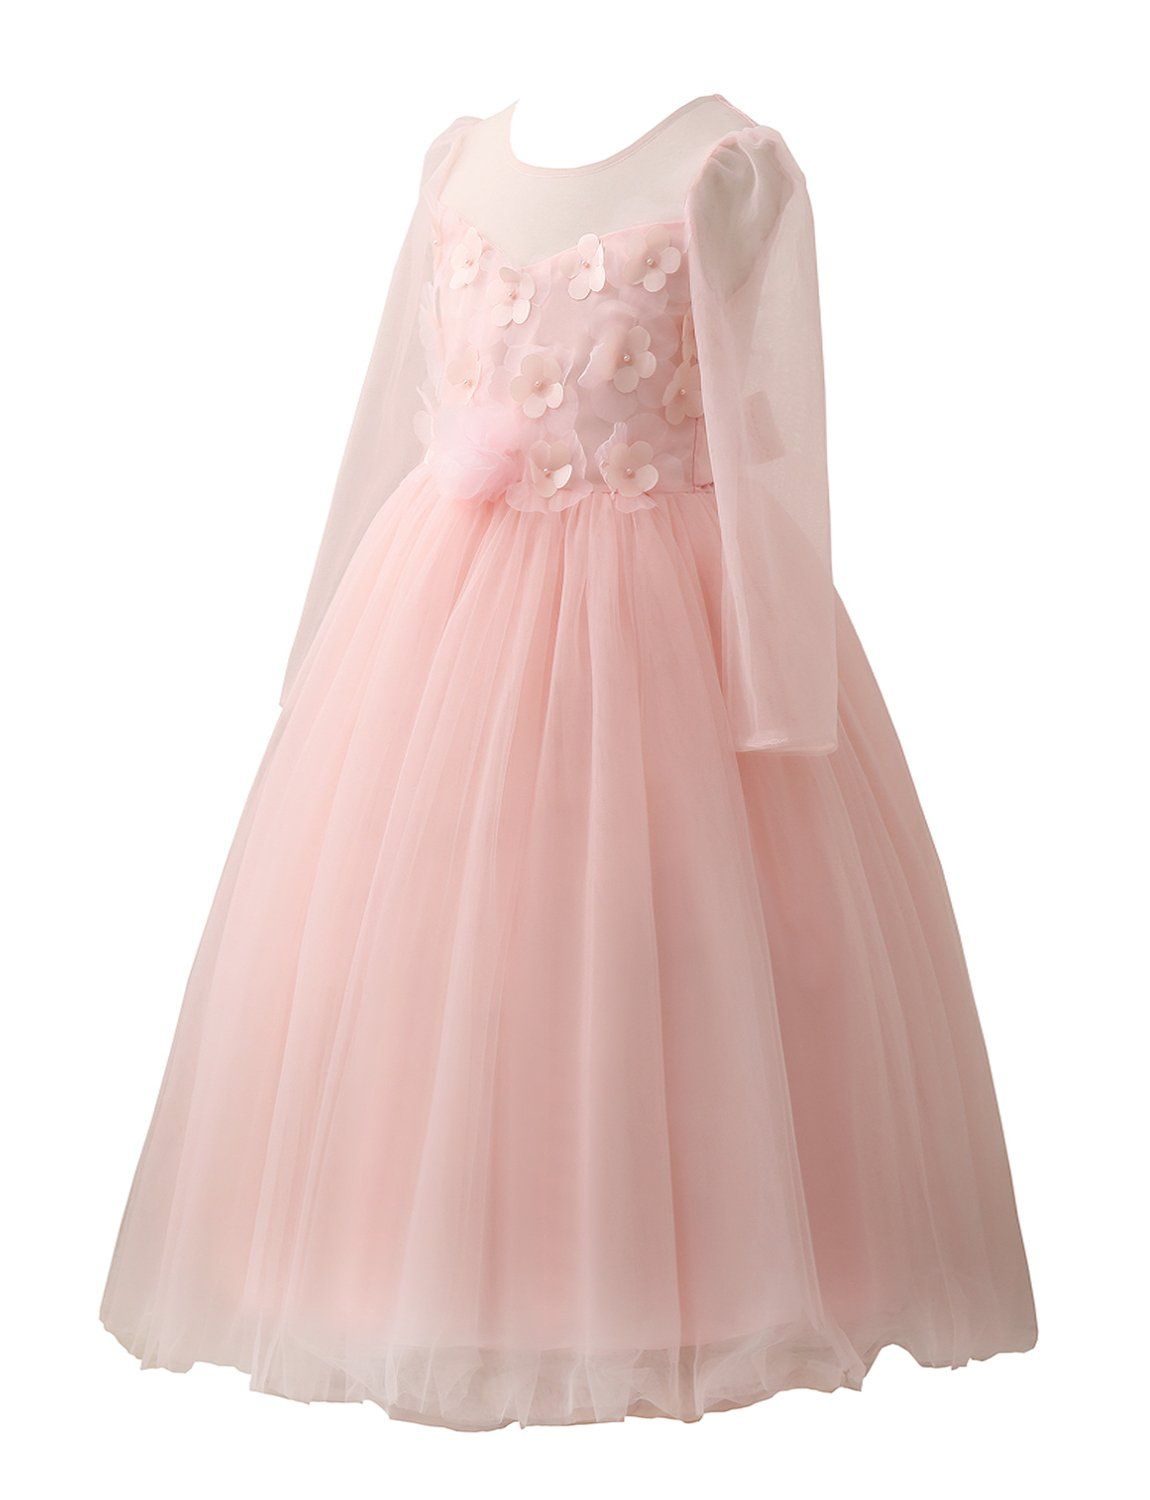 Castle fairy flower girls long sleeves blush pink party wedding